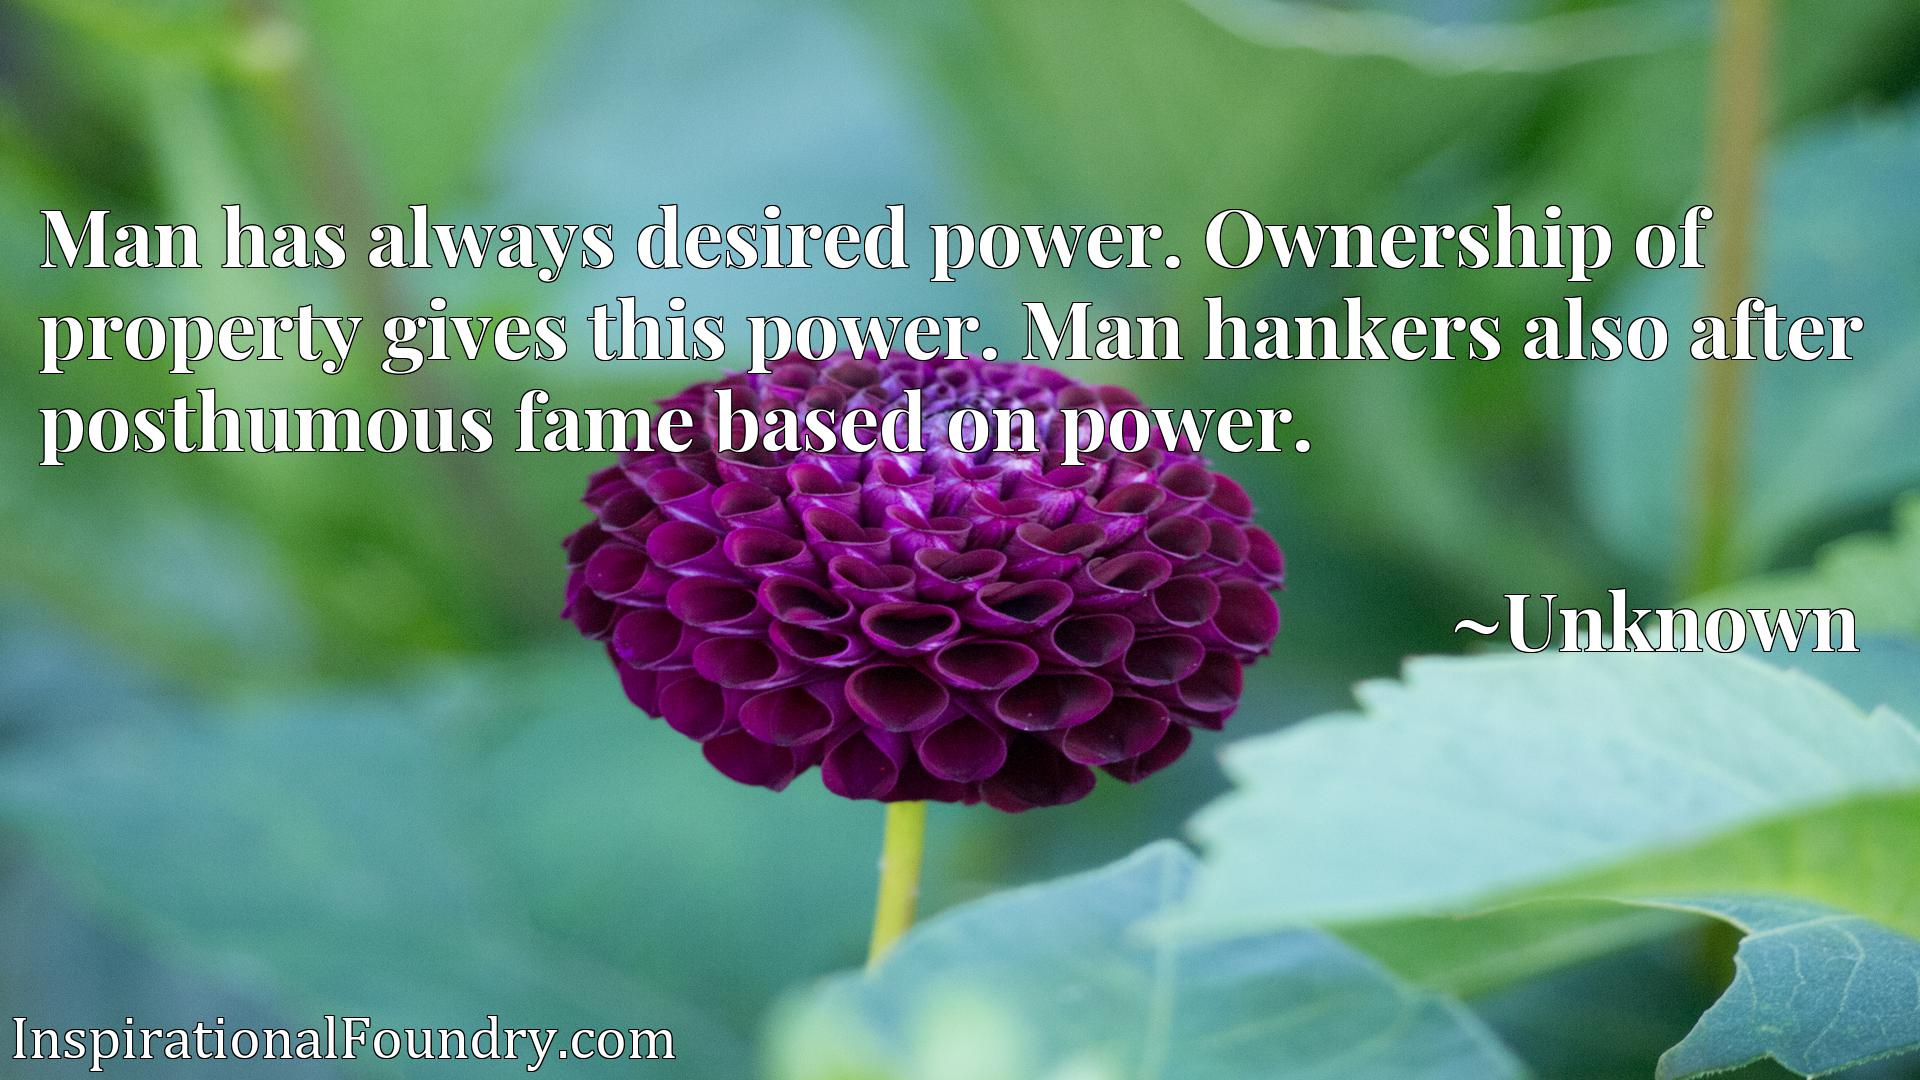 Man has always desired power. Ownership of property gives this power. Man hankers also after posthumous fame based on power.